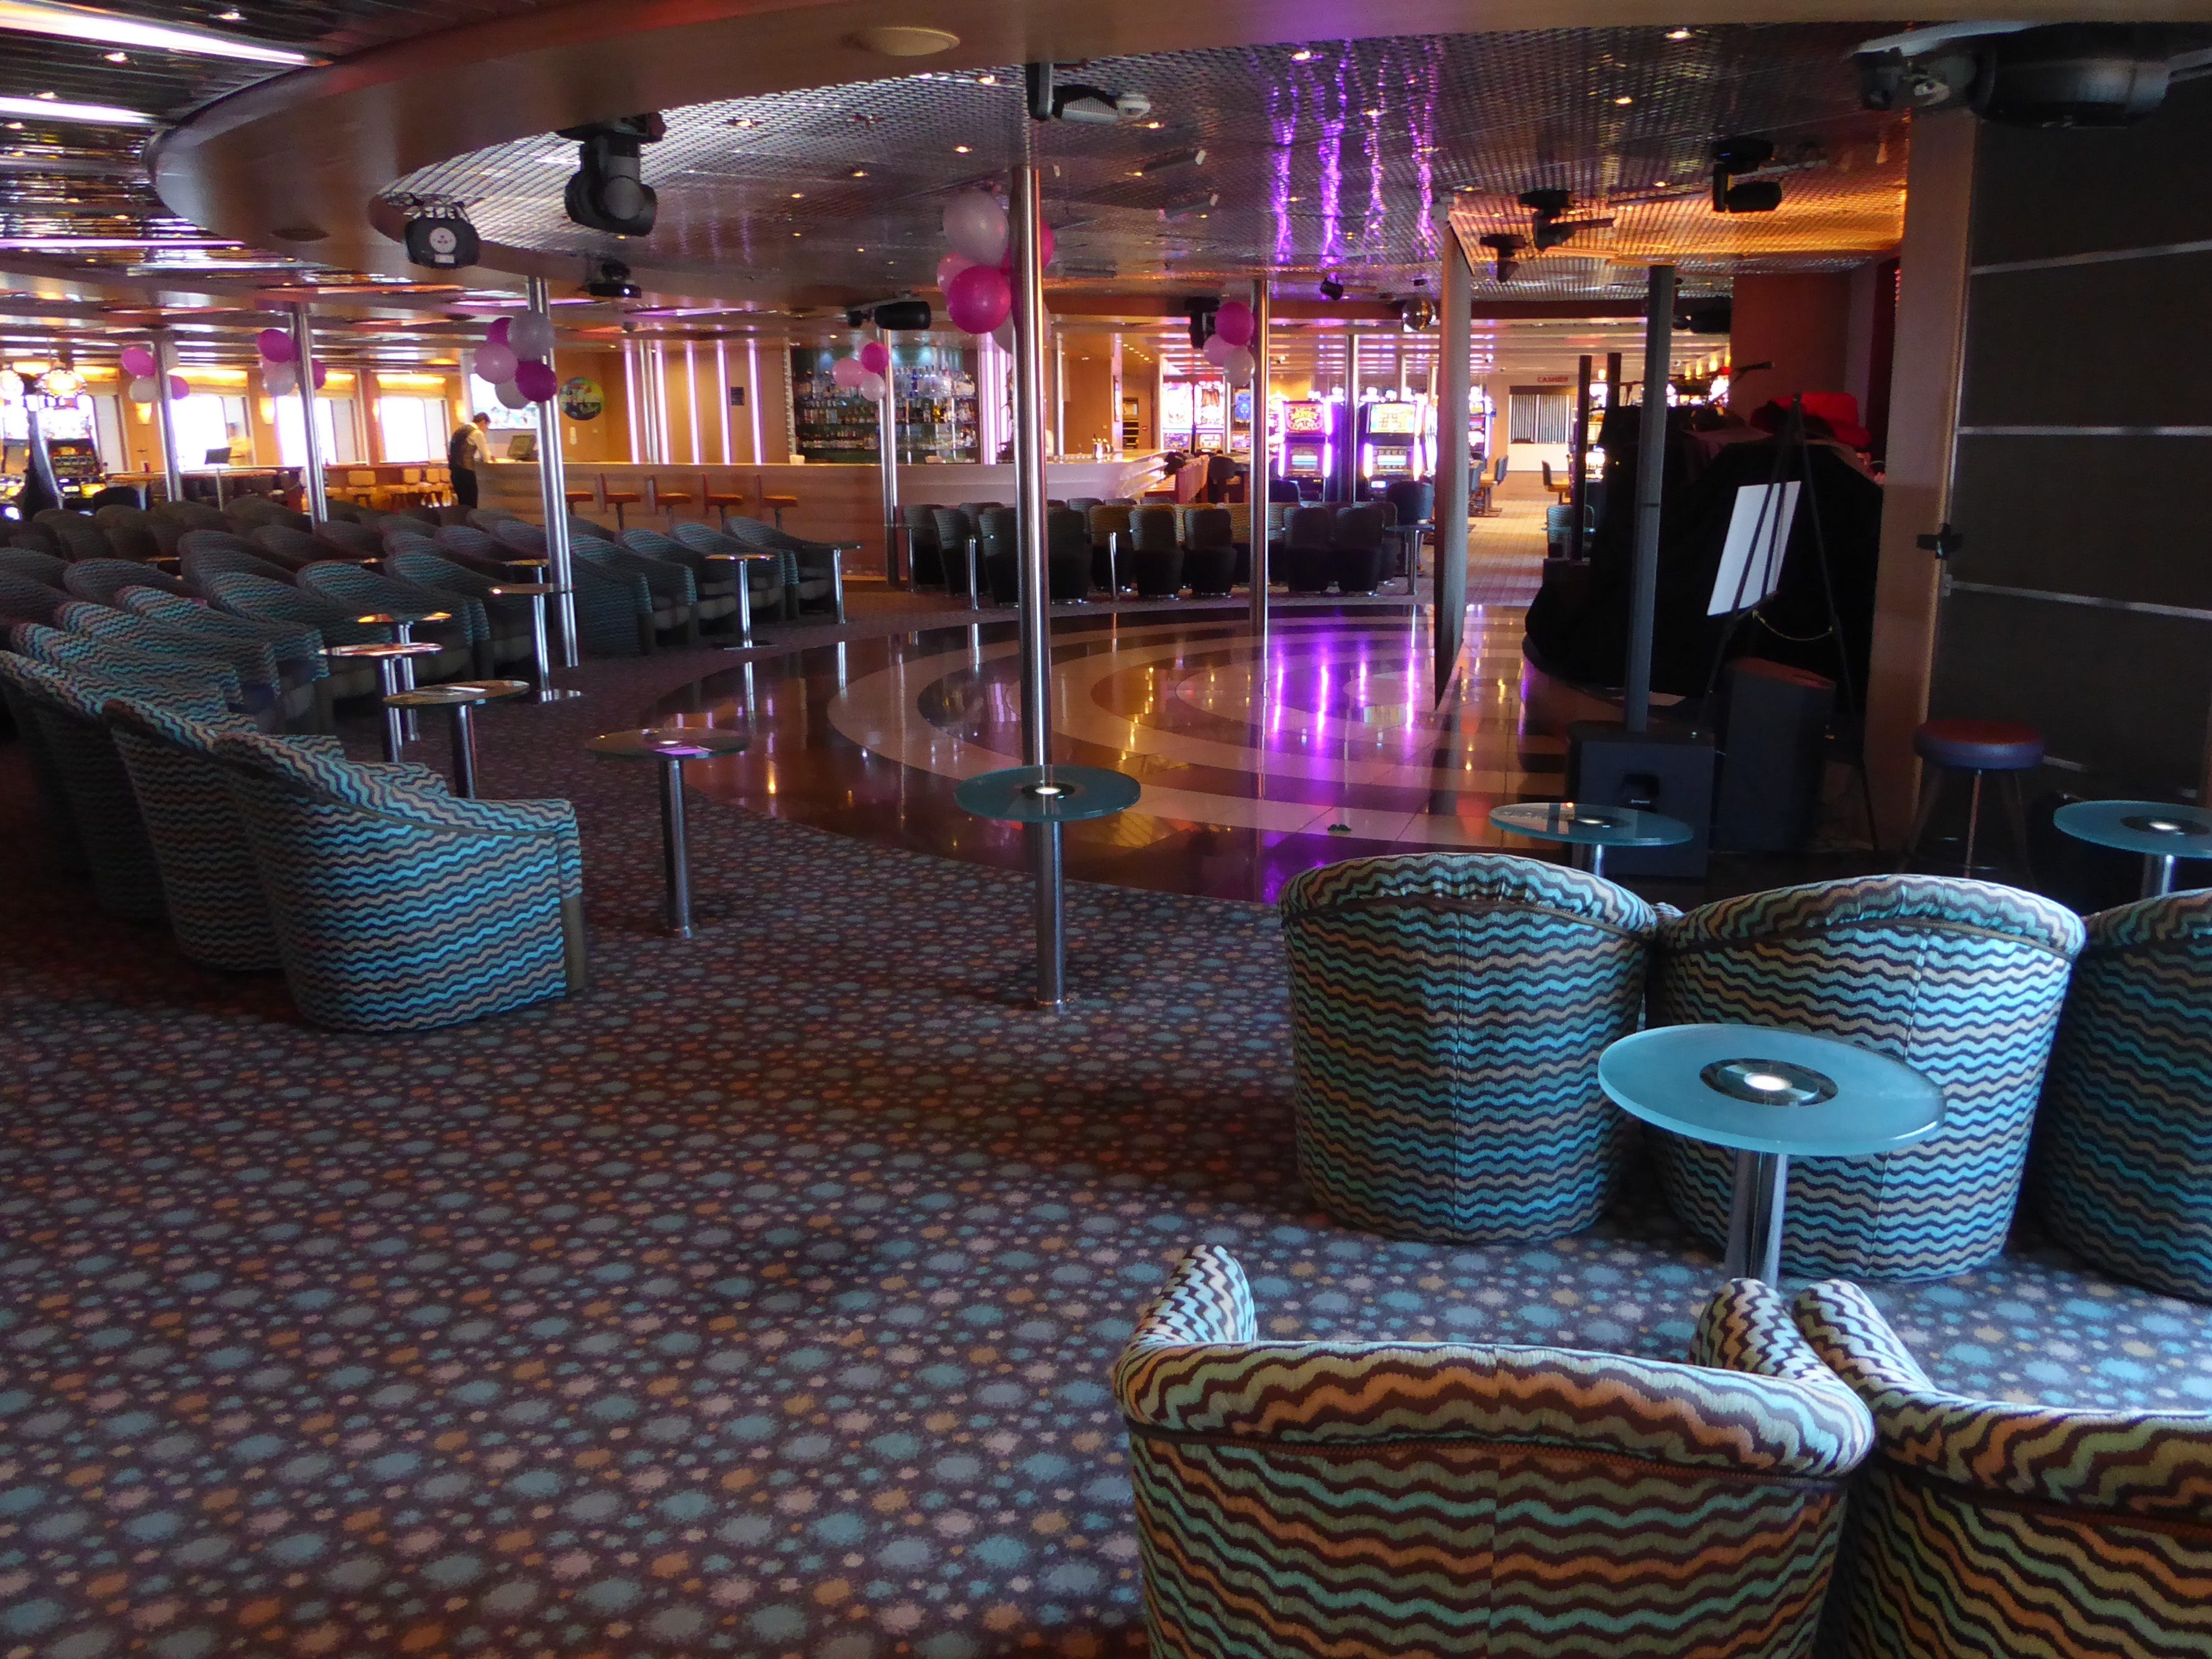 The Encore Lounge has an open floor plan with its own bar and a small stage.